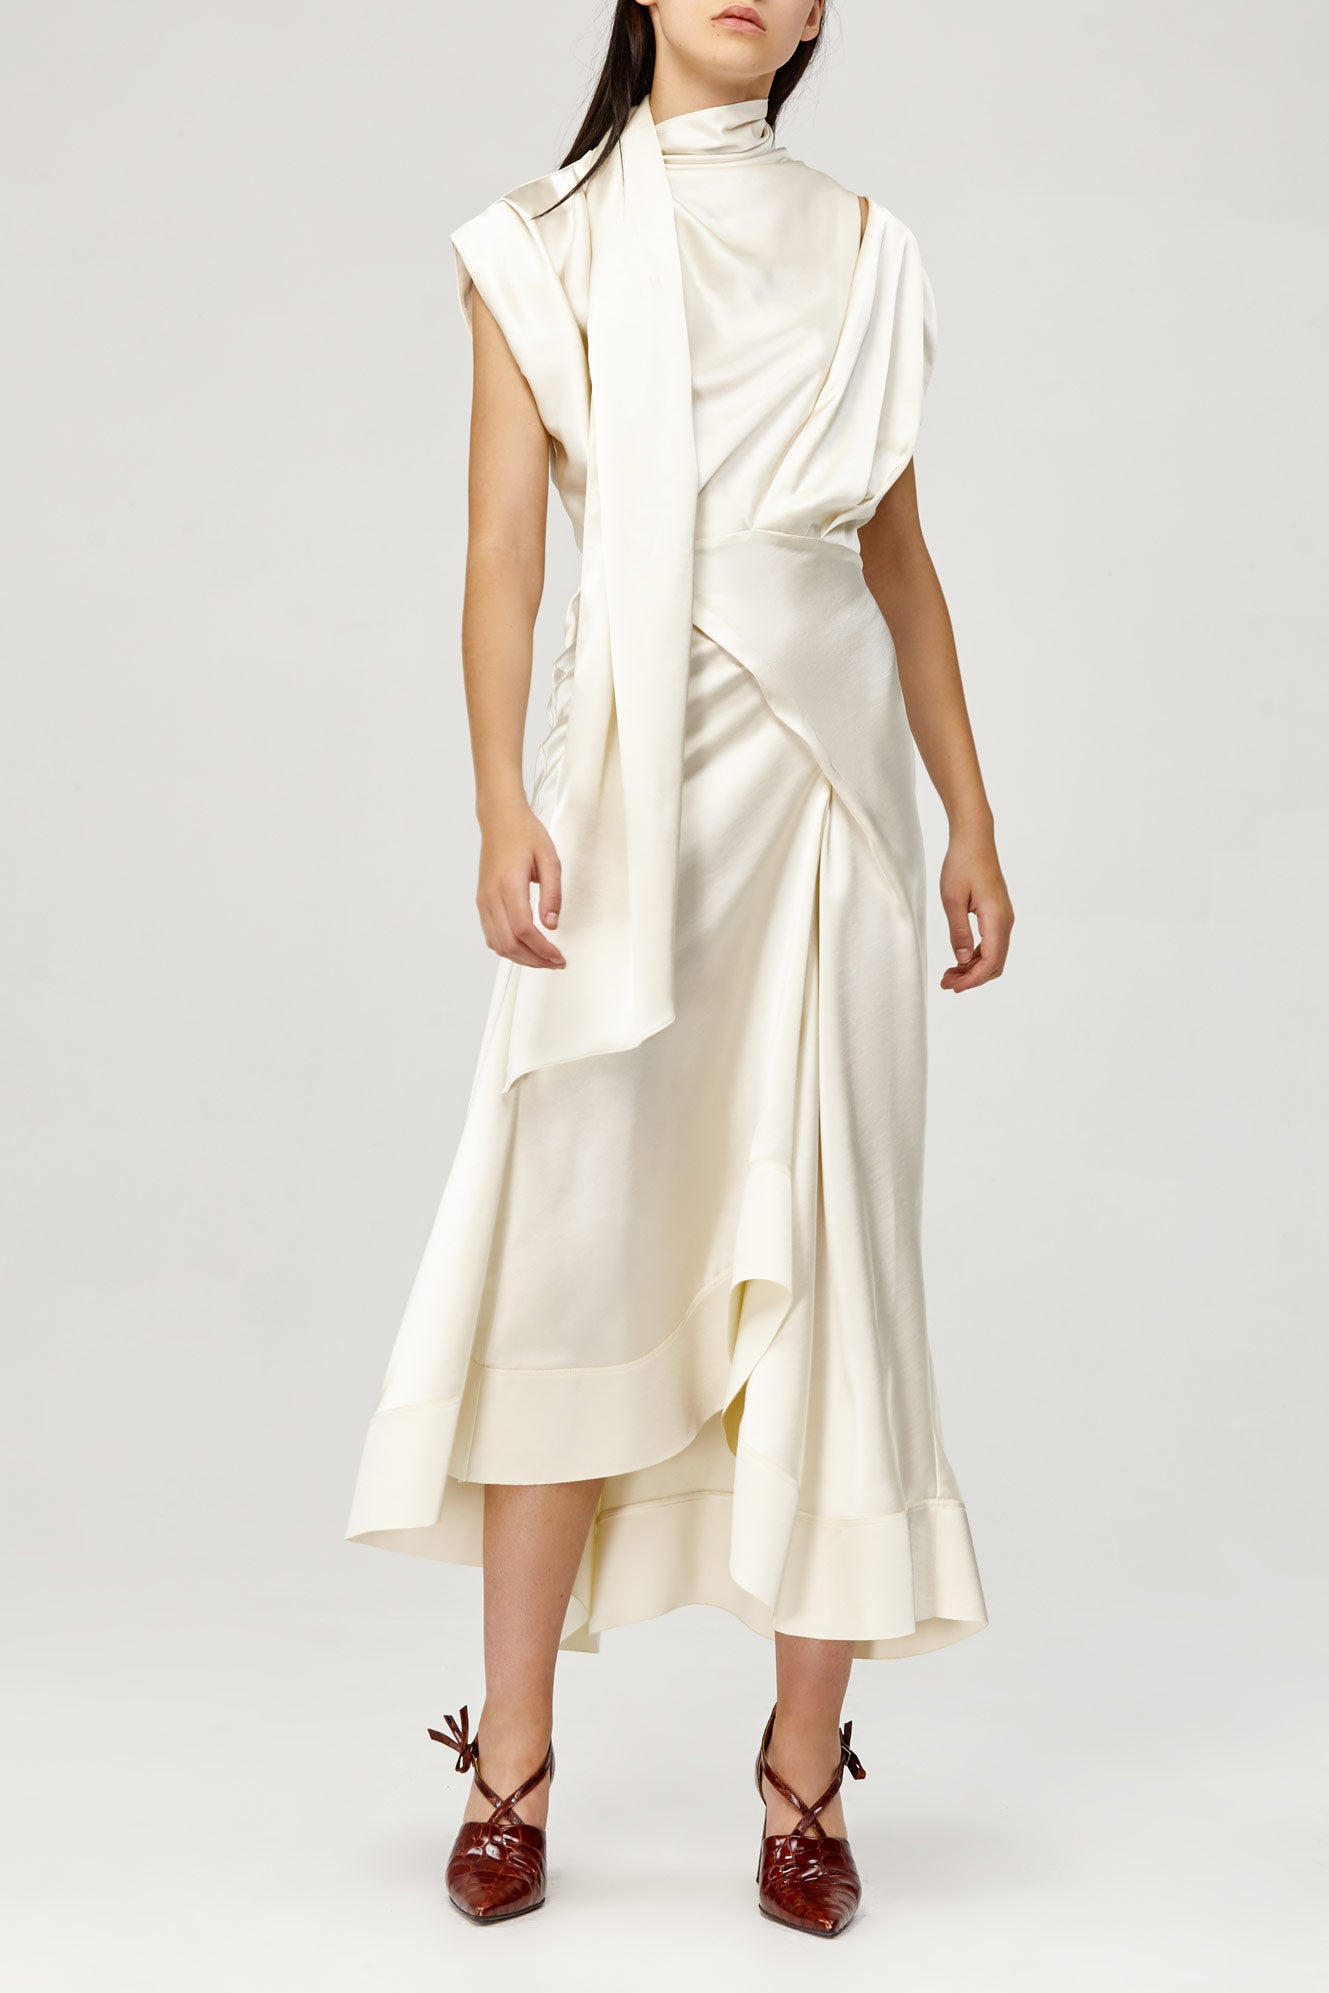 Acler Ladies Cream Dalisay Dress with Cowl Neck and Asymmetric Hem